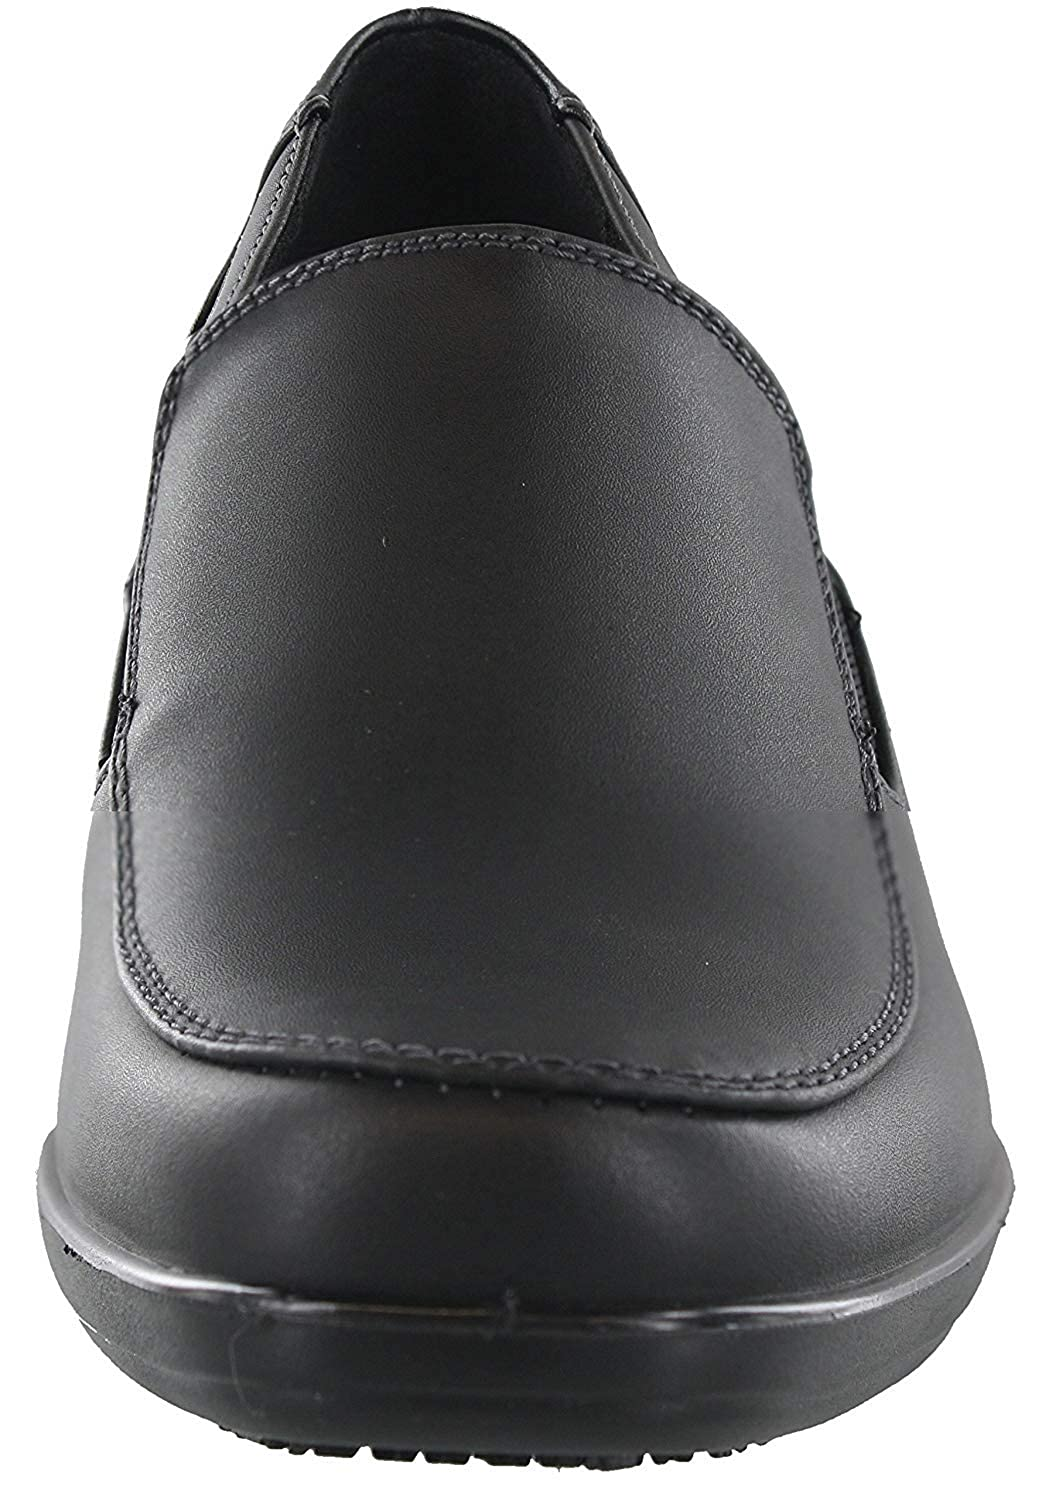 Dr Scholls Womens Freestyle Slip-on Loafer Shoes